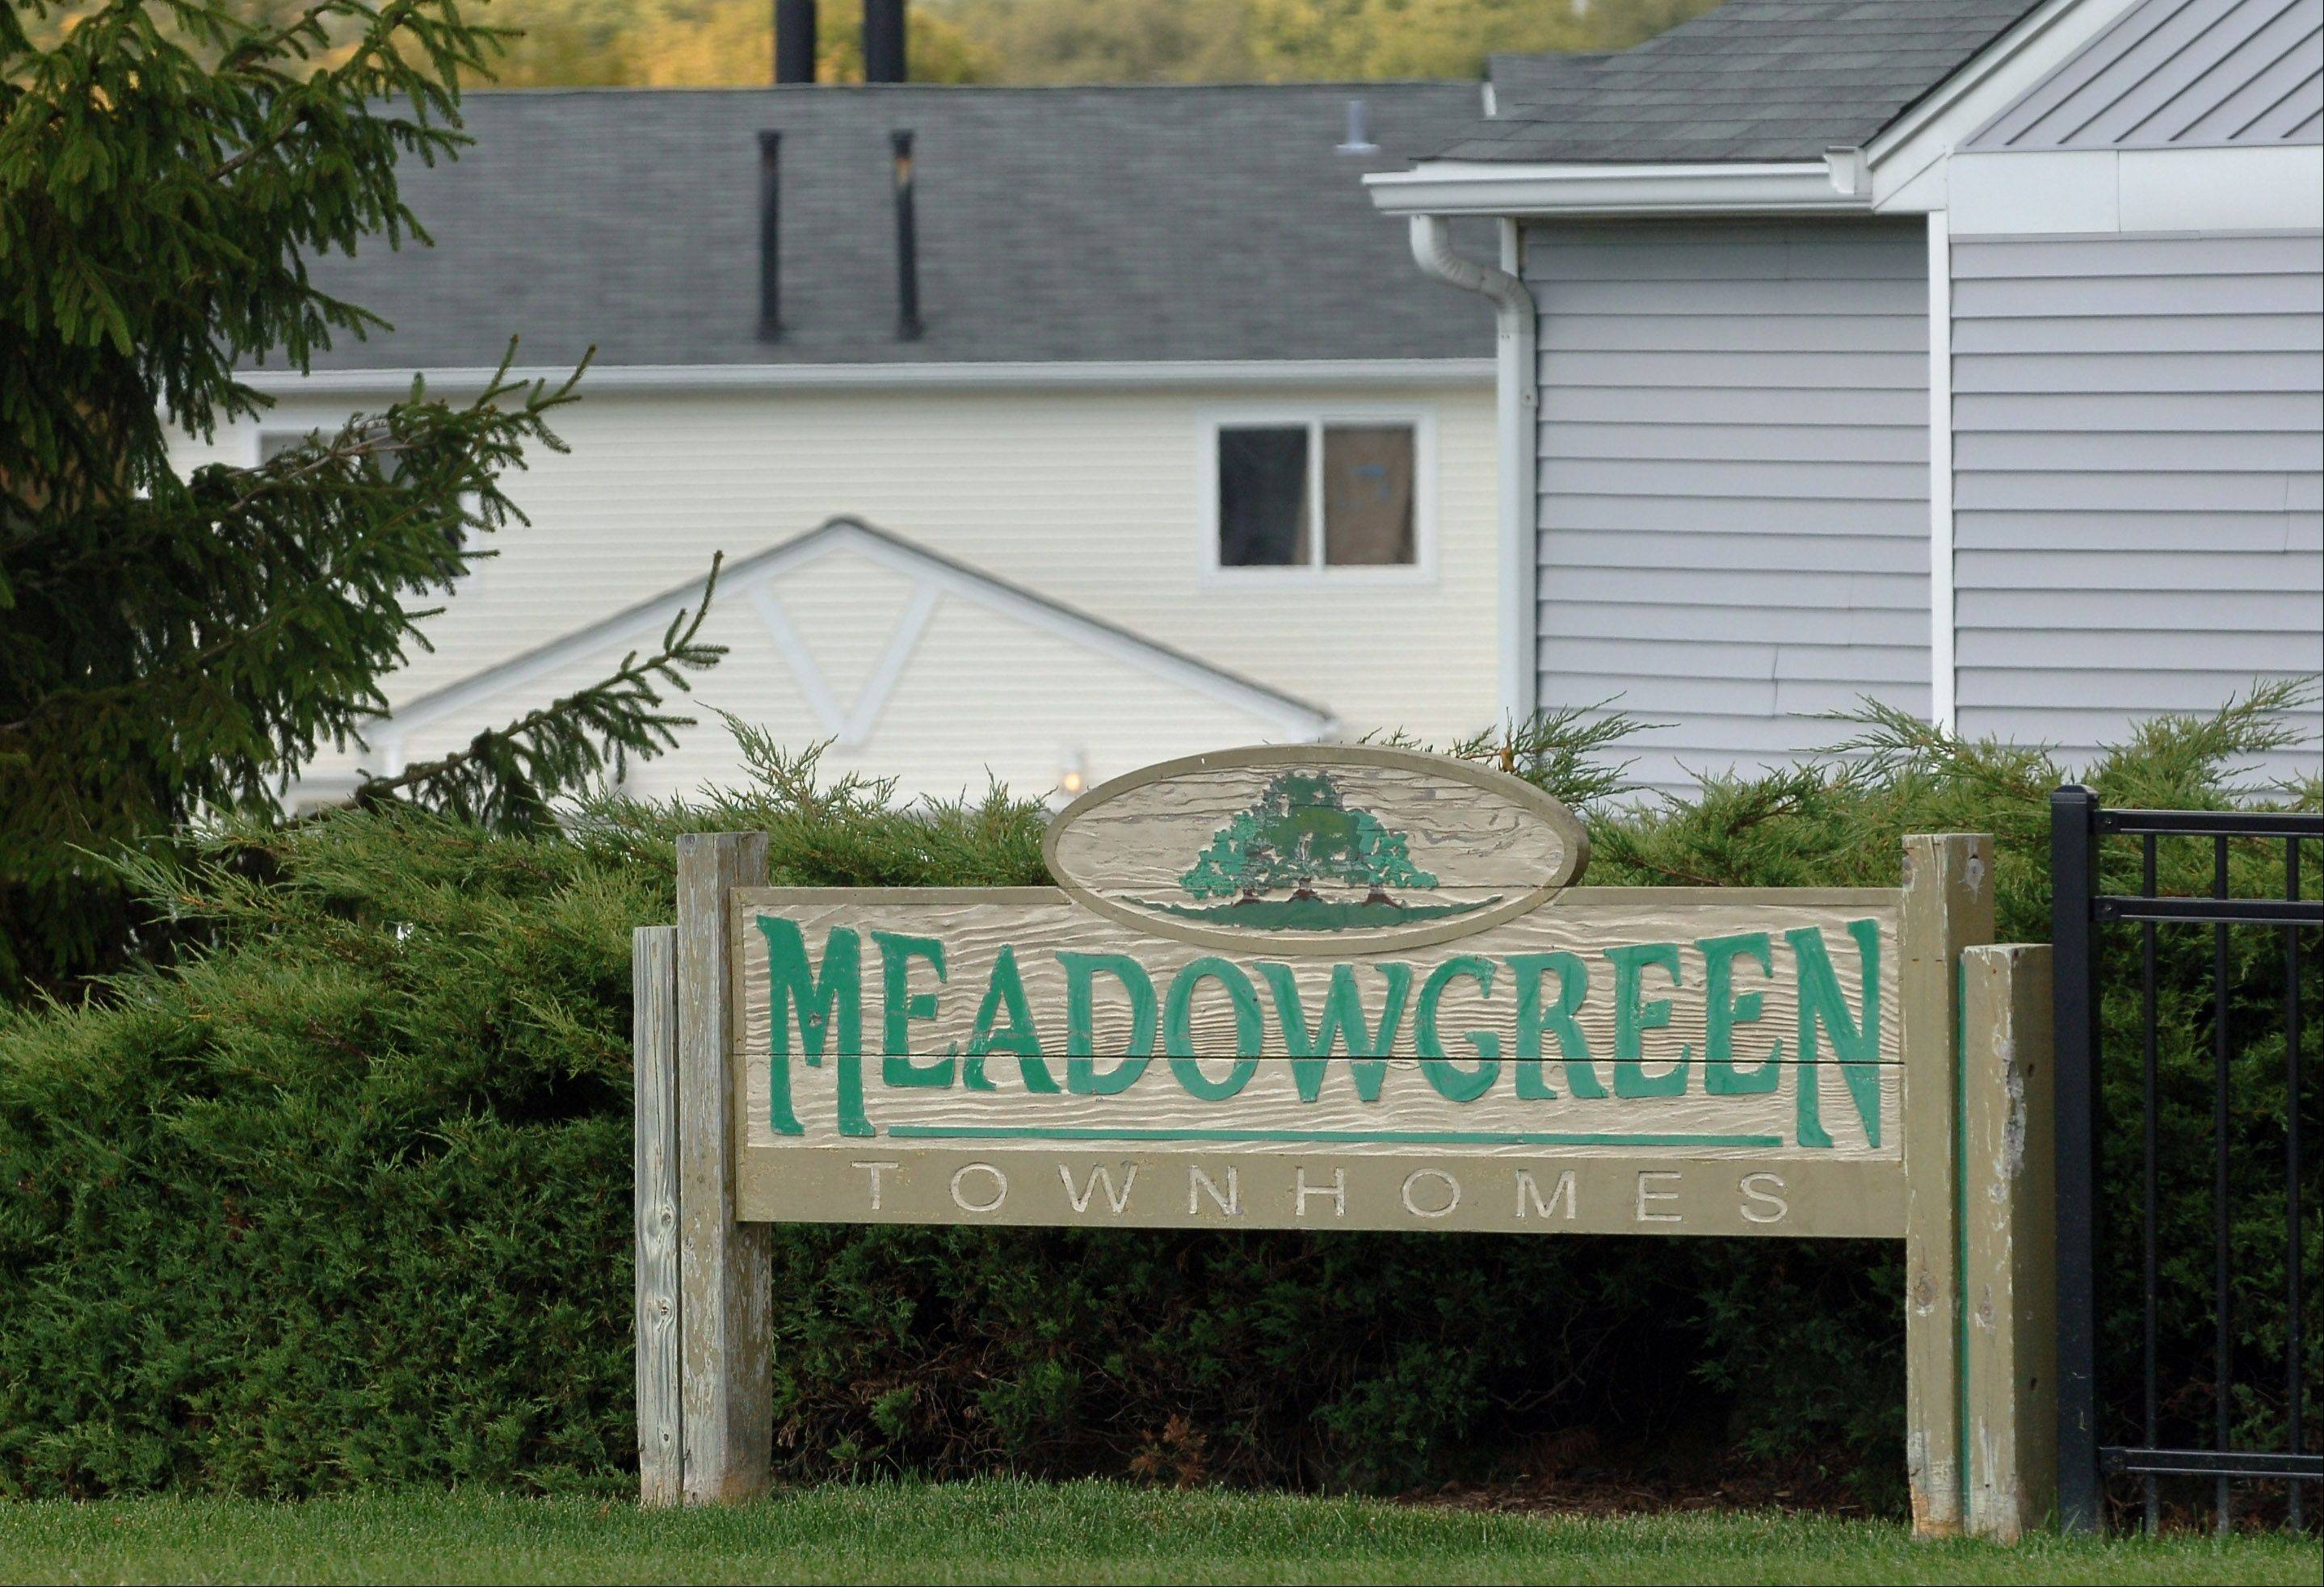 TIF District No. 3 represented a unique public/private effort to improve property conditions at the Meadow Green town home subdivision on Cedar Lake Road north of Rollins Road.